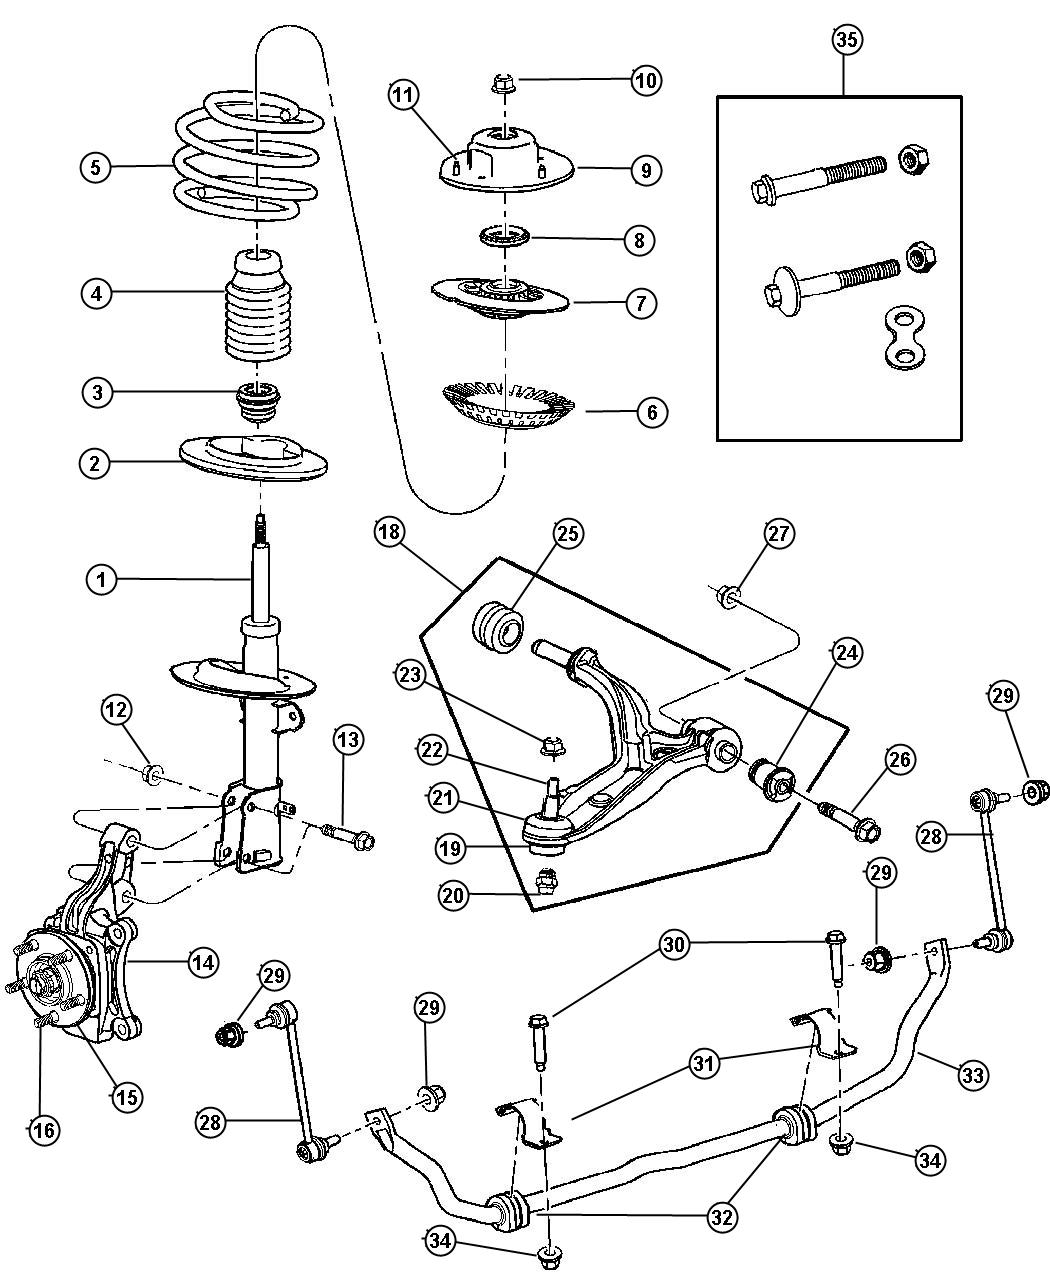 Dodge Magnum Rear Suspension Diagram